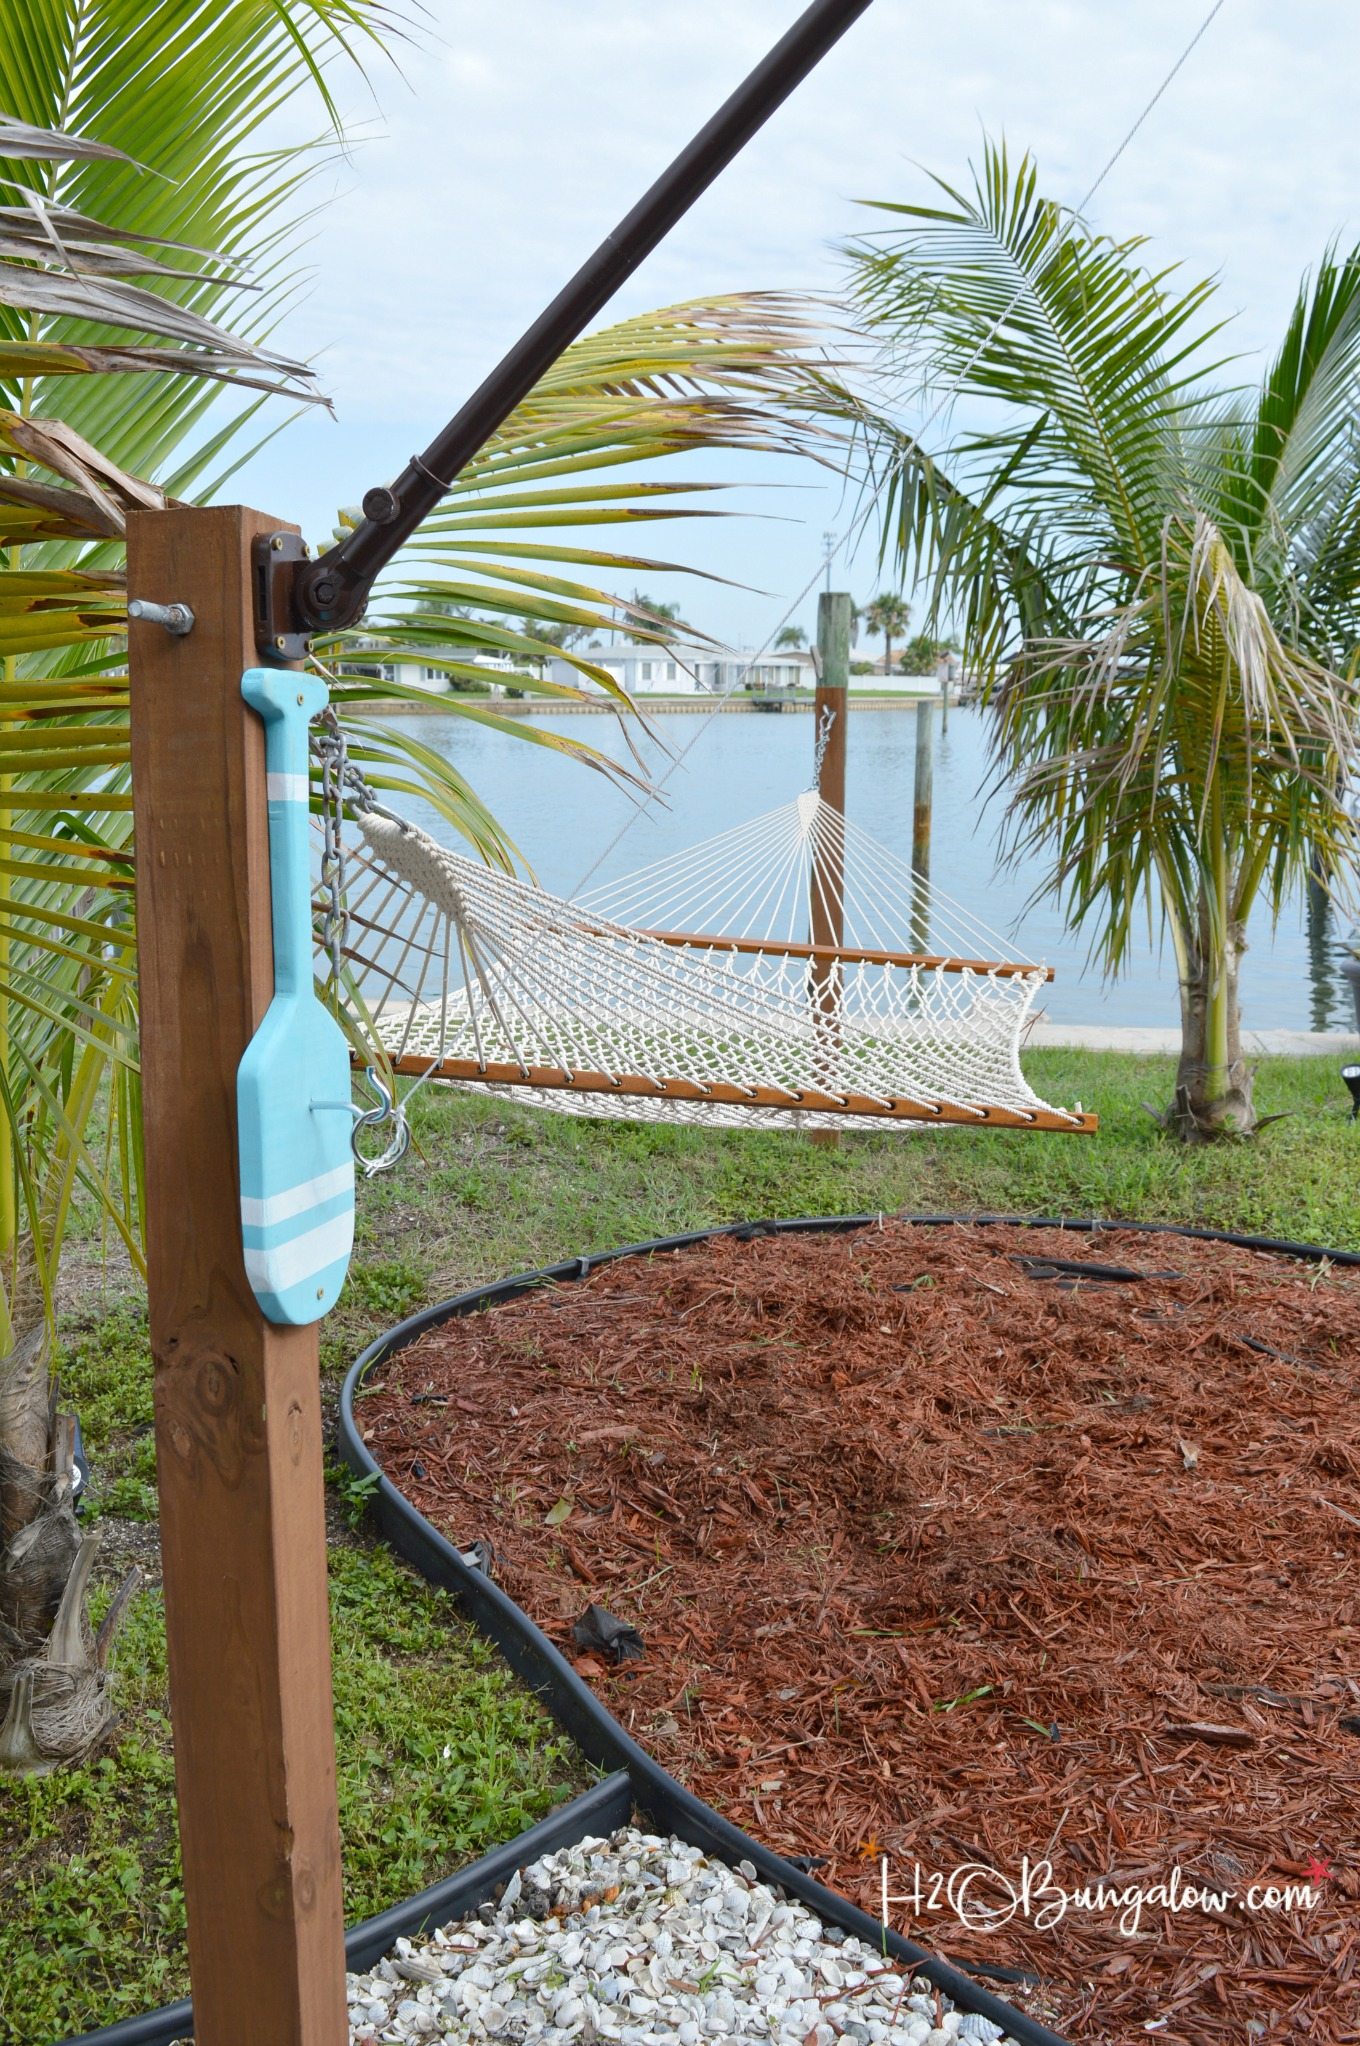 Freestanding DIY Hook and Ring Game Tutorial  H20Bungalow